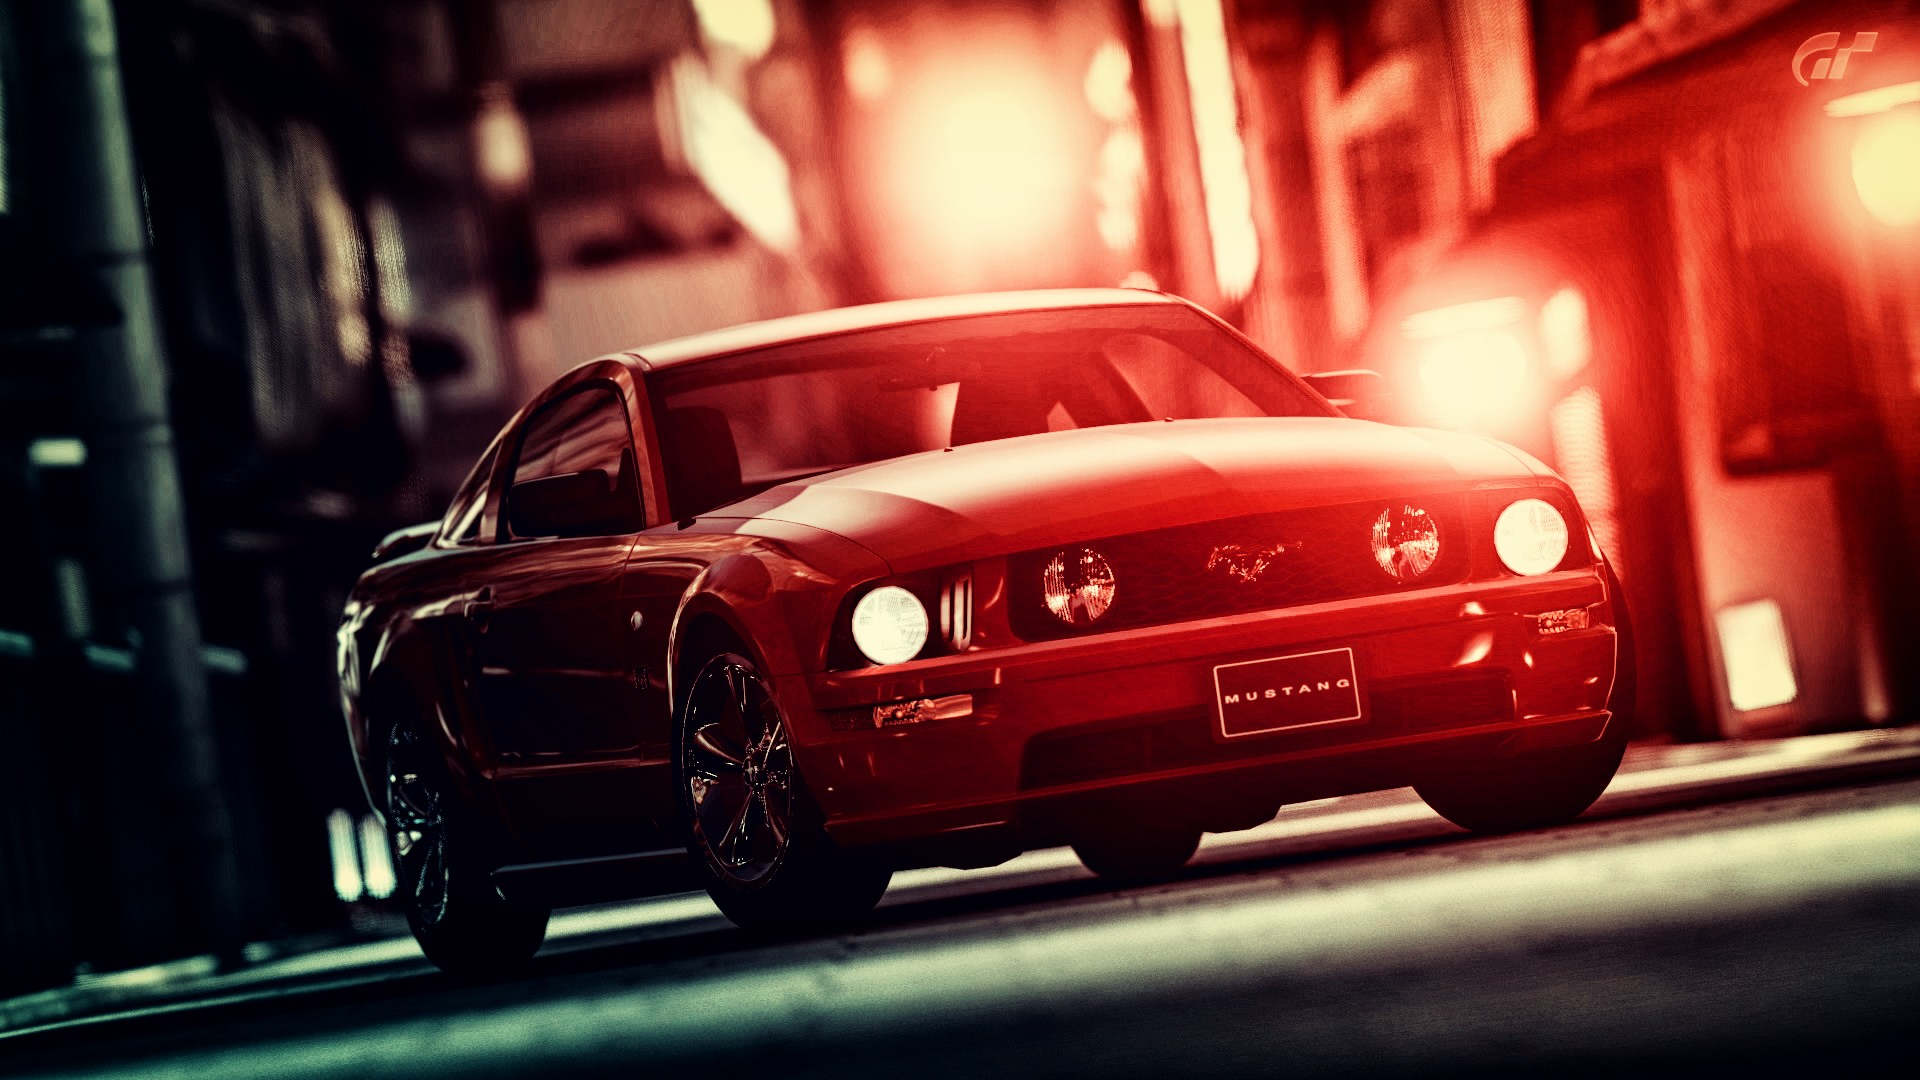 Ford Mustang Hd Wallpaper Background Image 1920x1080 Id 392048 Wallpaper Abyss